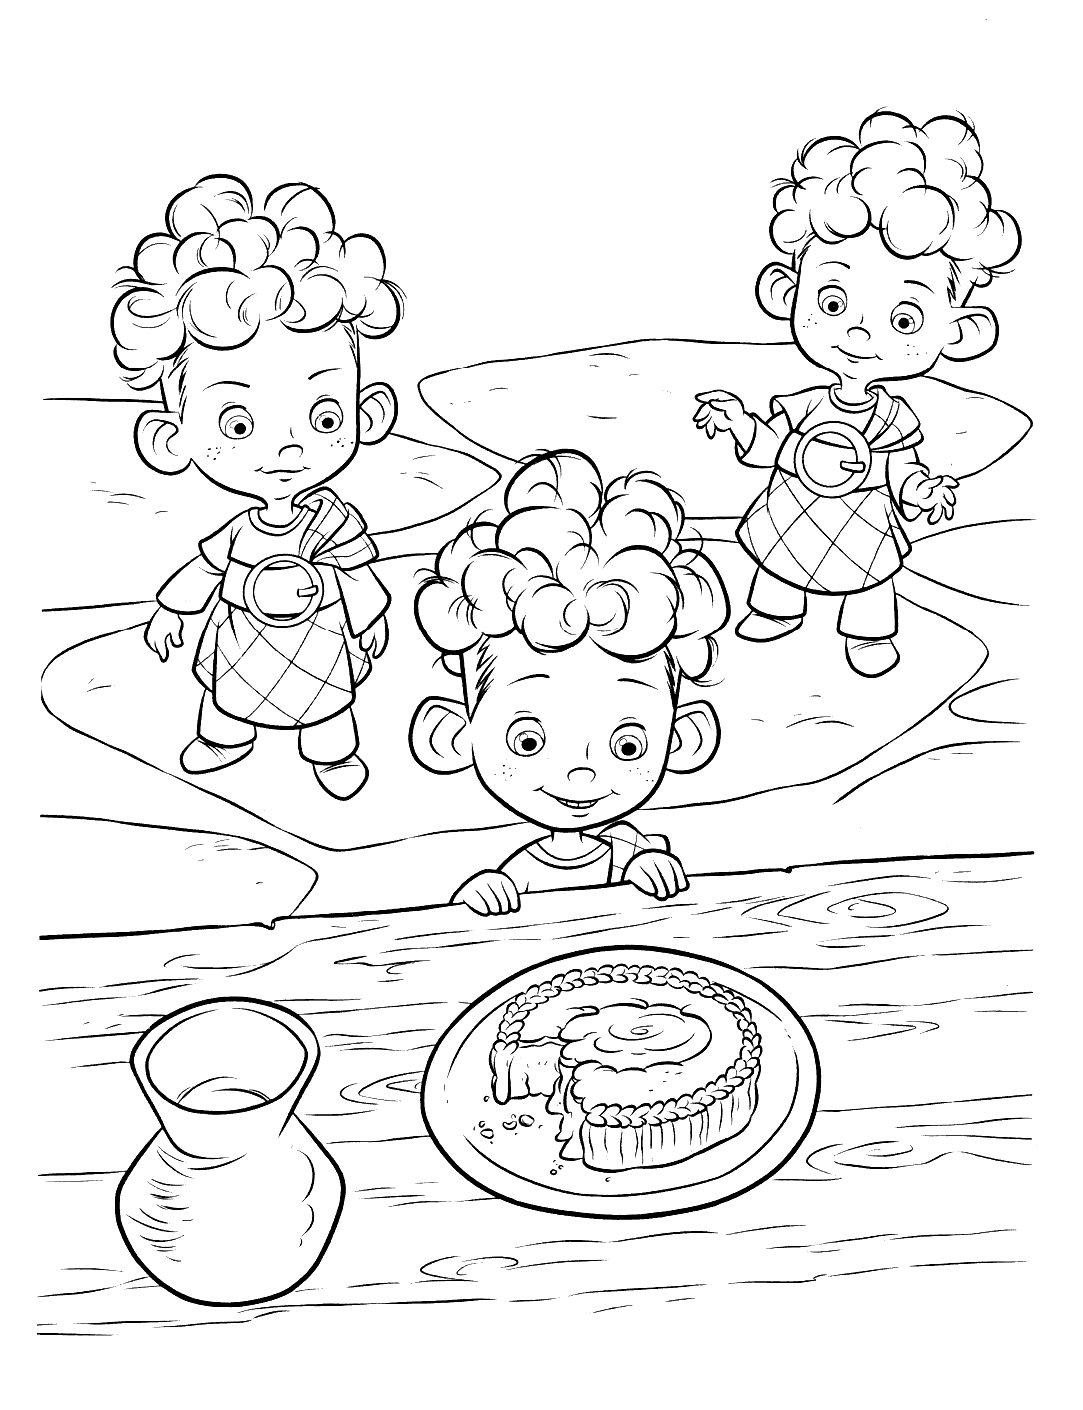 Adult Coloring Pages Girl With Hair